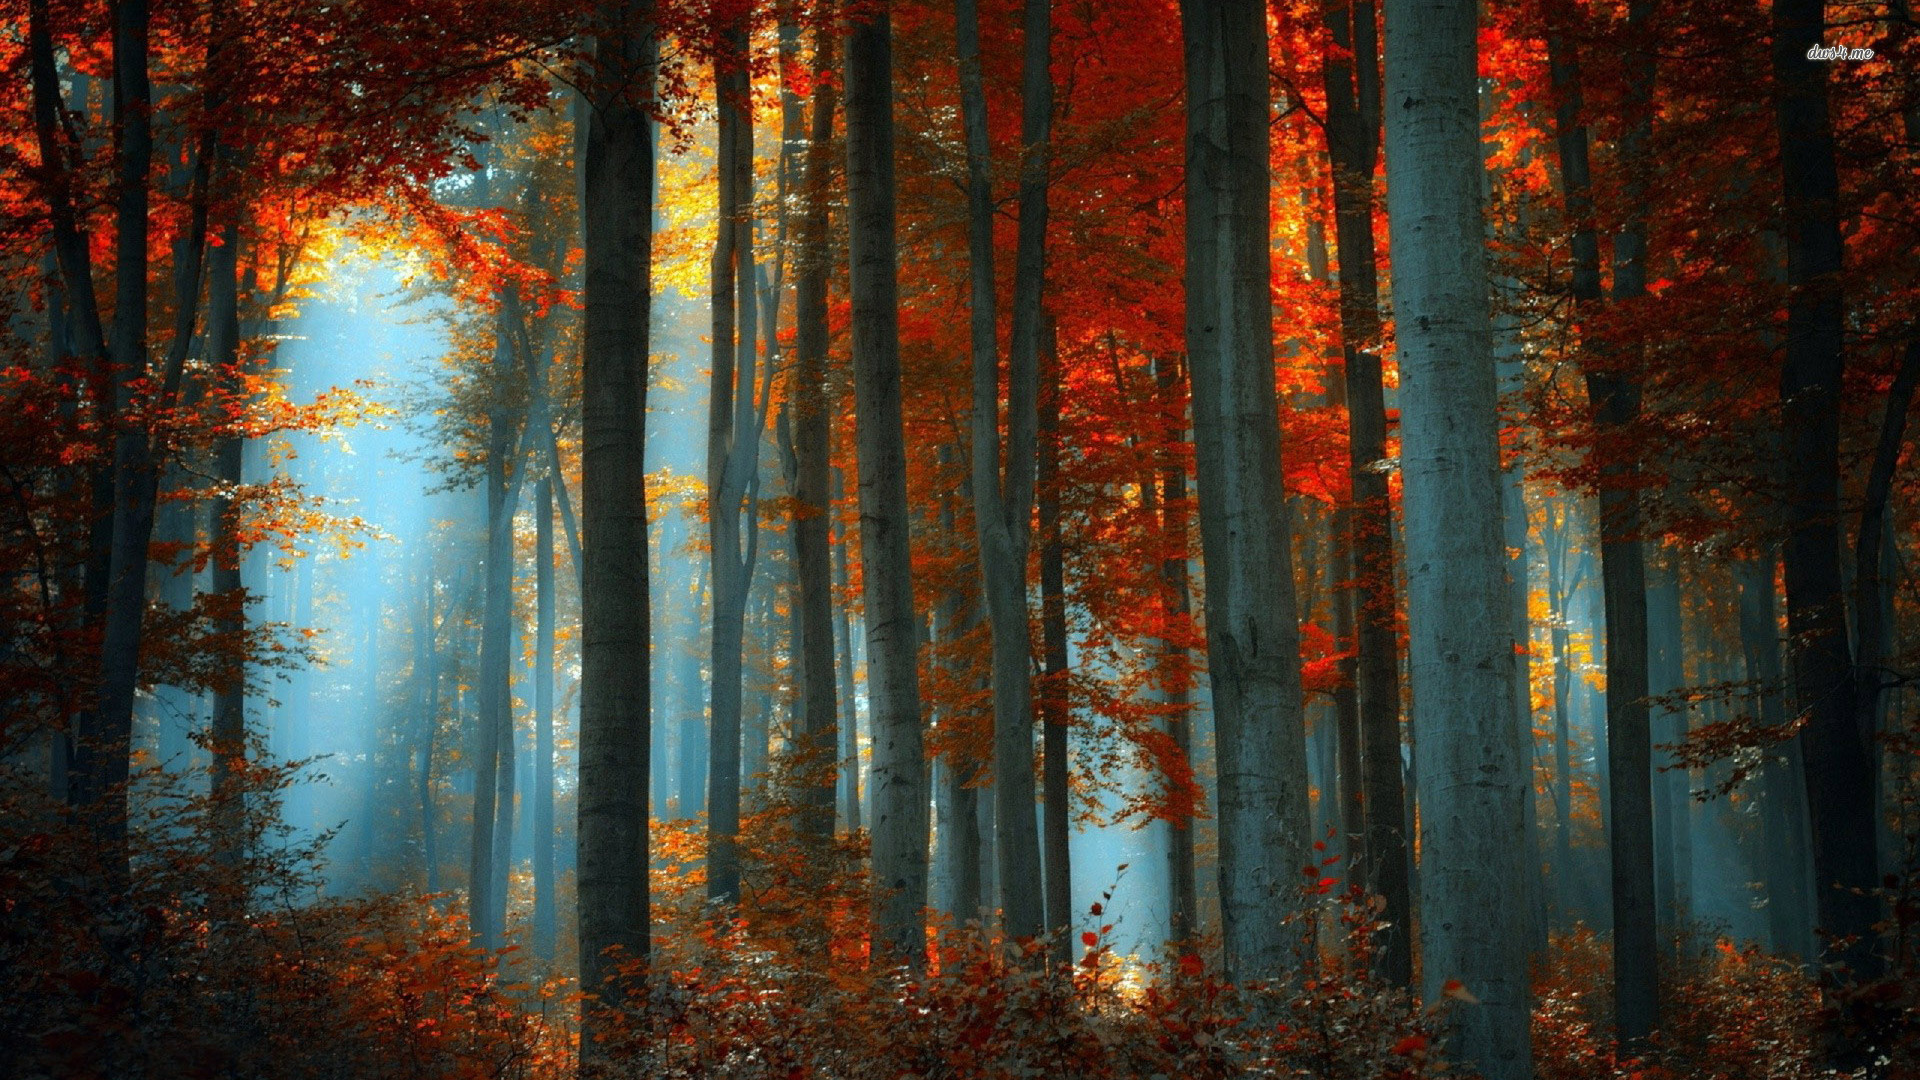 03/01/2015, Autumn Forest HQFX - Pack.78